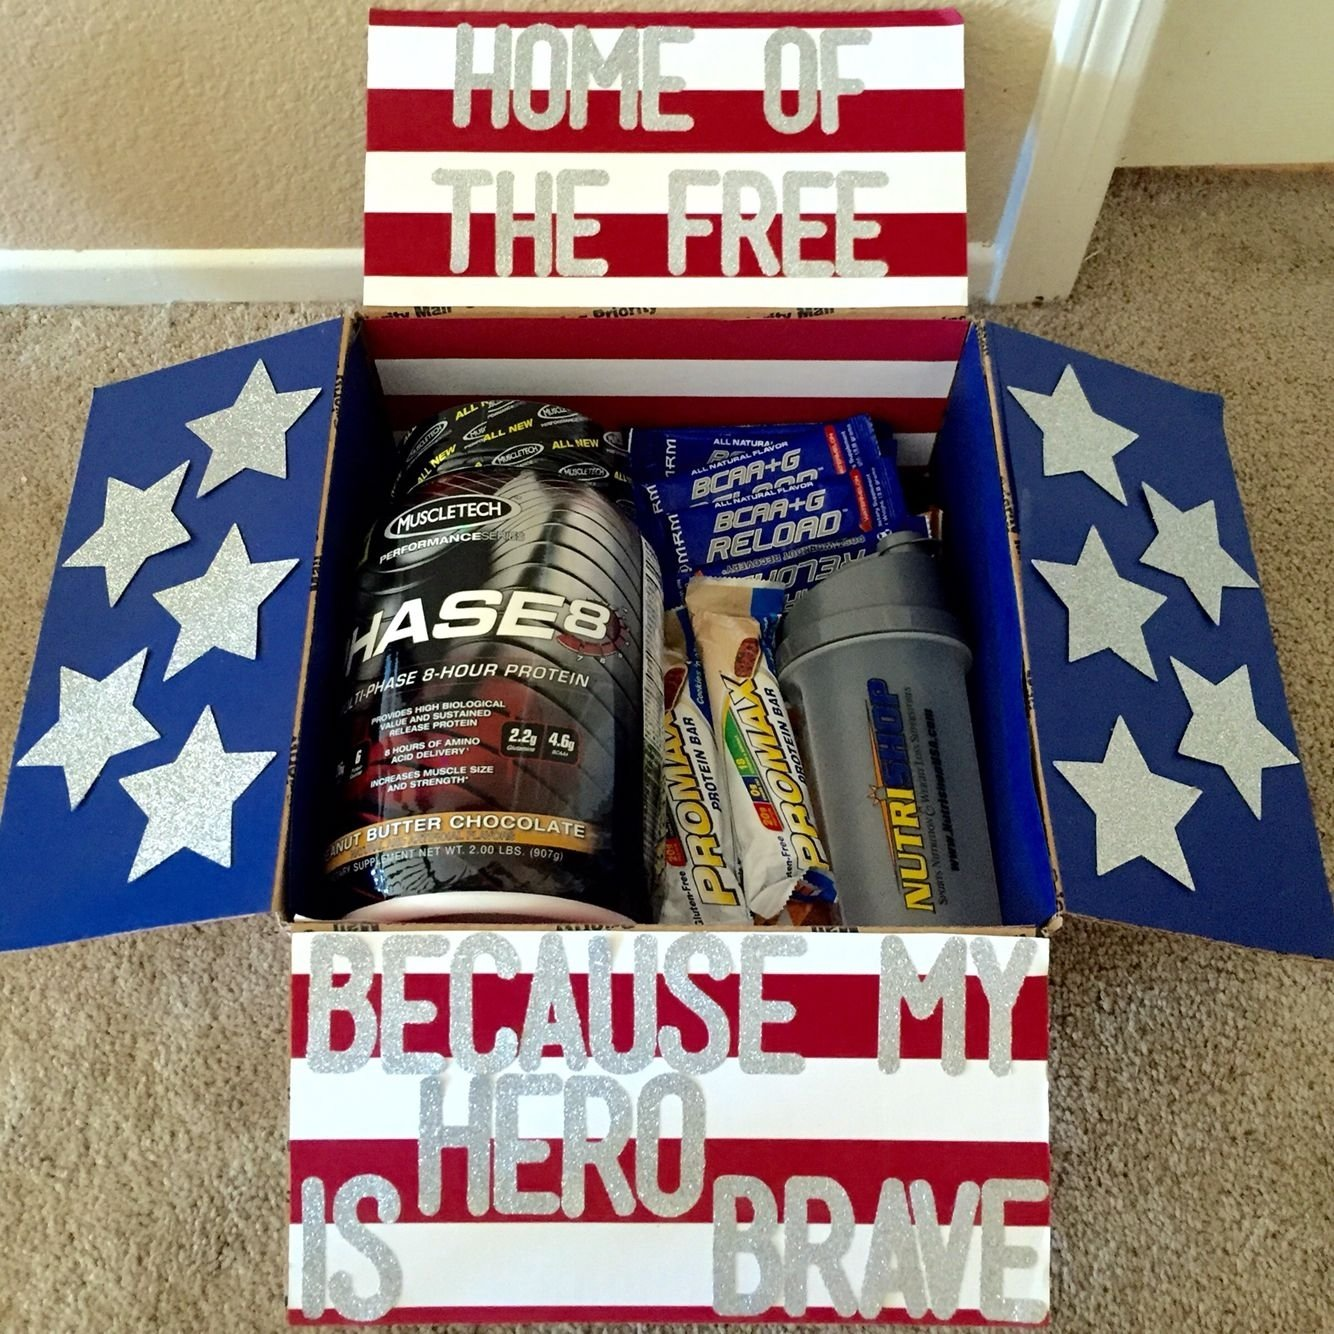 4th of july themed care package for babe | gifts for her | pinterest